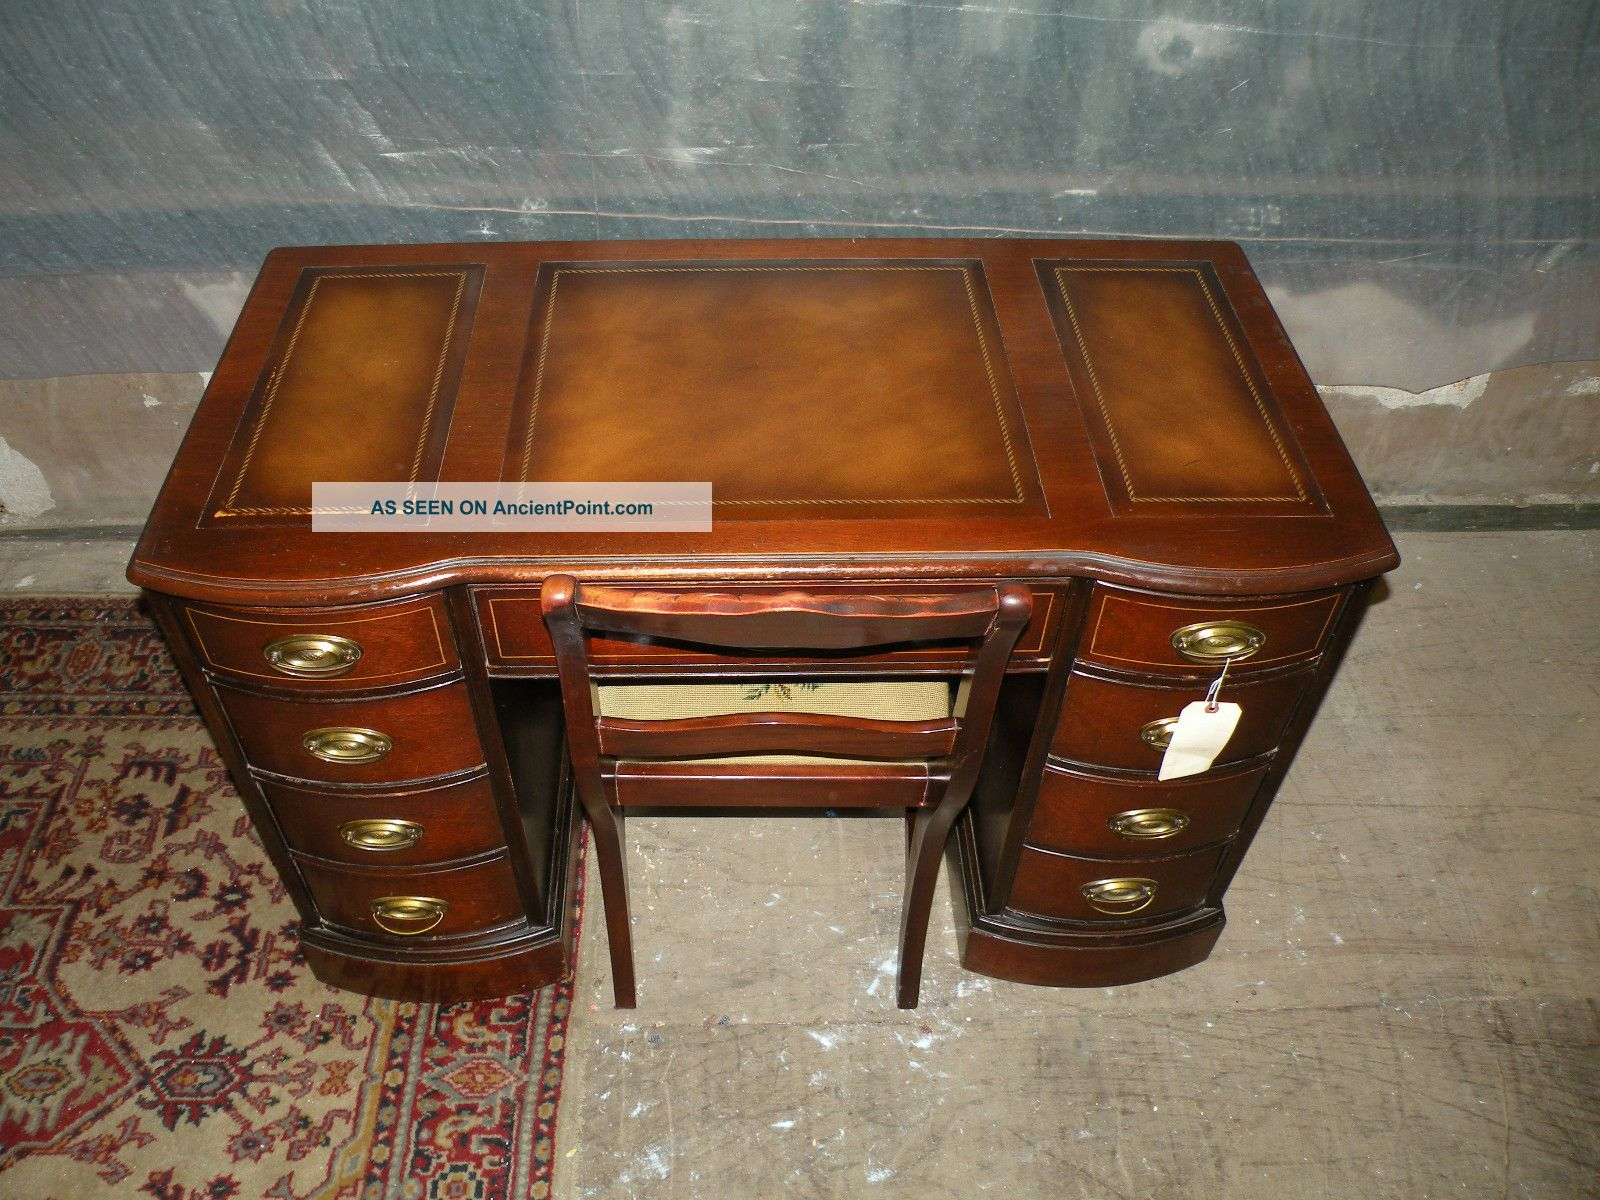 Antique Leather Top Mahogany Kneehole Desk With Needlepoint Chair